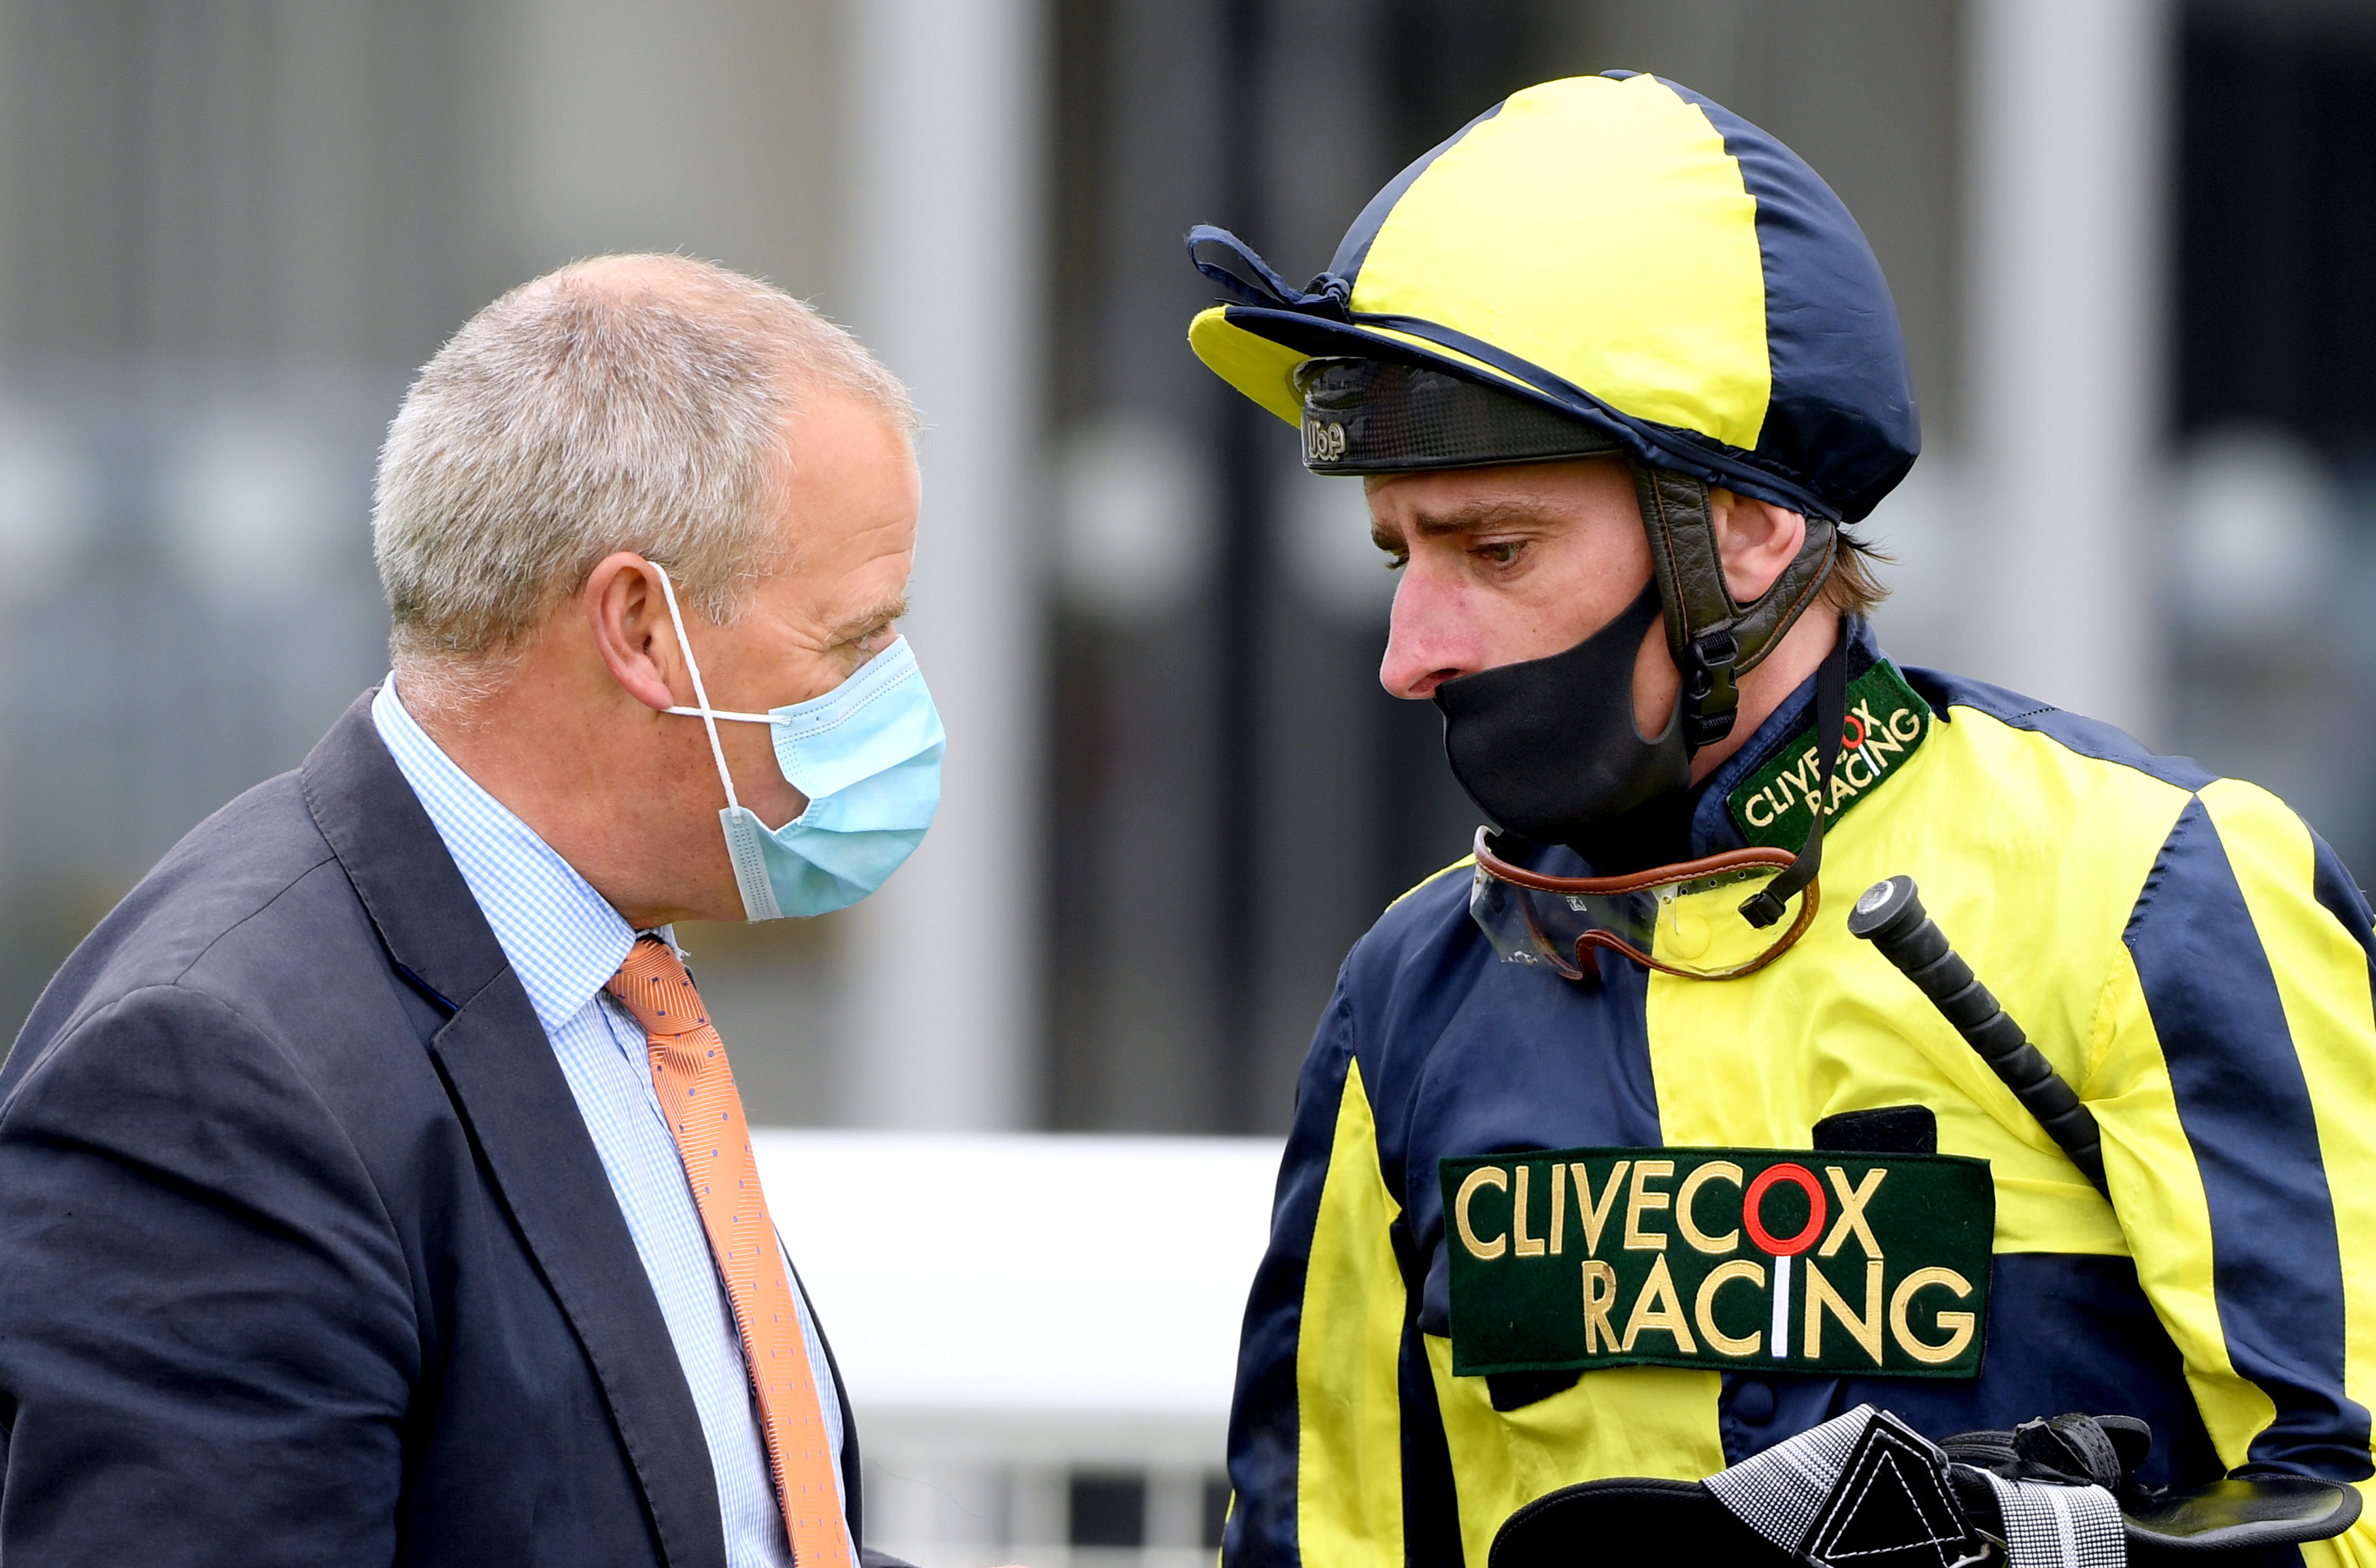 Jockey Adam Kirby (right) speaks to horse trainer Clive Cox after wining the Home Of Winners At valuerater.co.uk Handicap (Div 2) with Willy Nilly at Bath Racecourse.